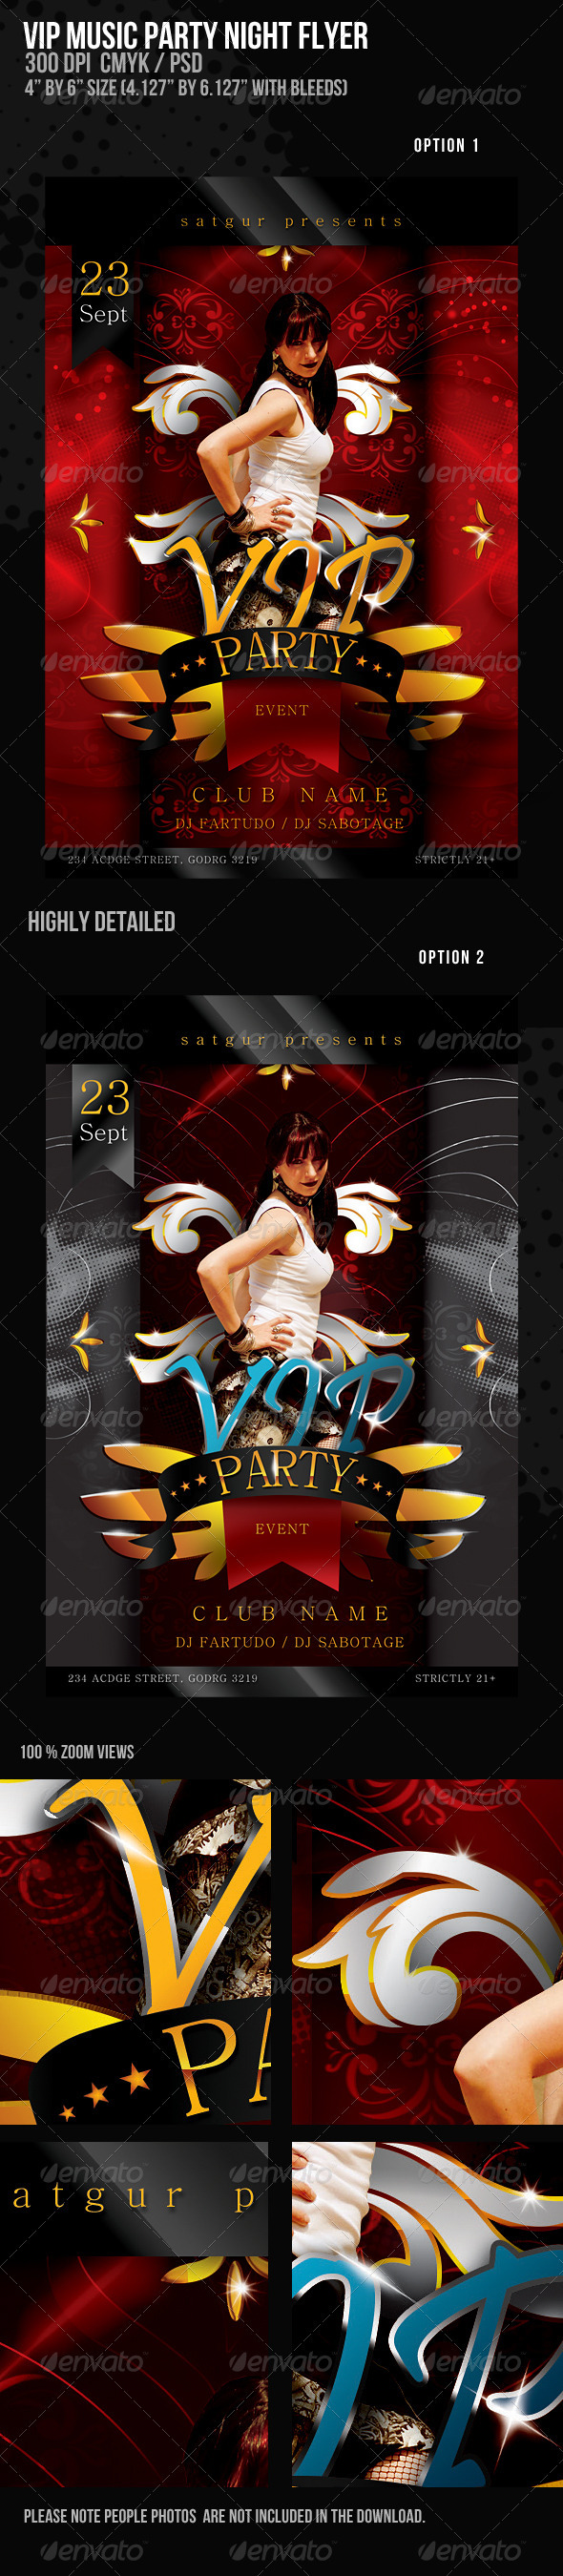 VIP Music Party Night Flyer - Clubs & Parties Events